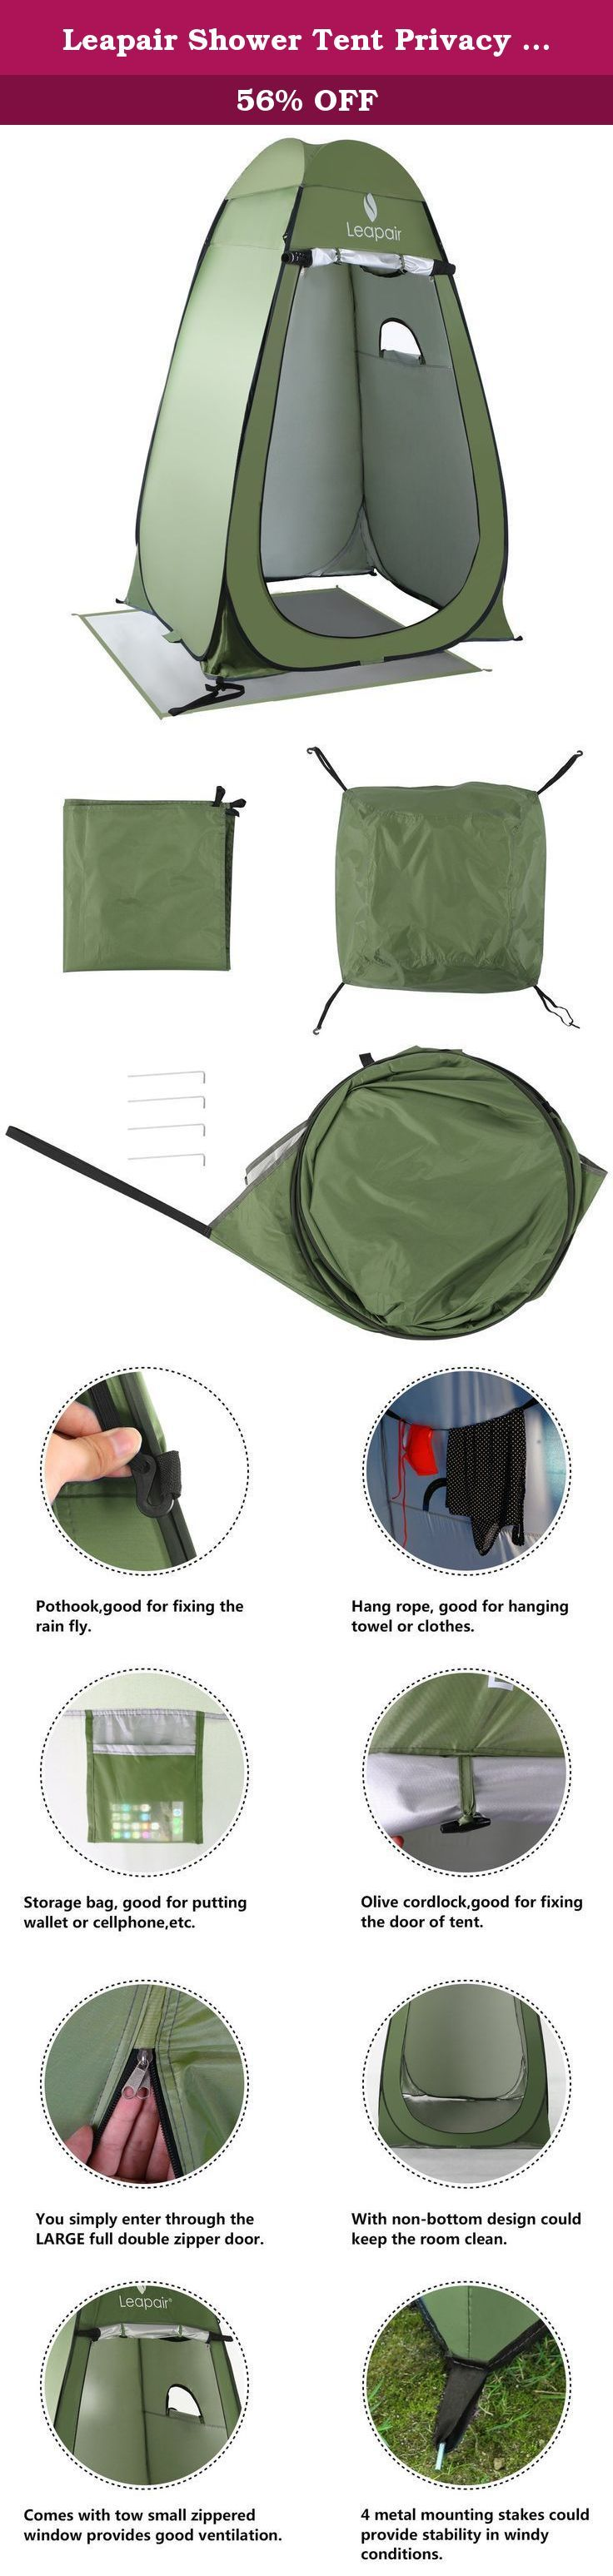 Leapair Shower Tent Privacy Portable Camping Beach Toilet Pop Up Tents Changing Dressing Room Outdoor Backpack Shelter Green. Shelter is seconds away with the Leapair Instant Pop-Up Privacy Tent. Easy to set up, this collapsible lightweight tent/cabana shelter opens in seconds giving you a private place to change clothes, take a shower, use the restroom, and more at the beach or at camp. Made with high-quality, waterproof taffeta 191-D nylon polyester and flexible steel for durability…